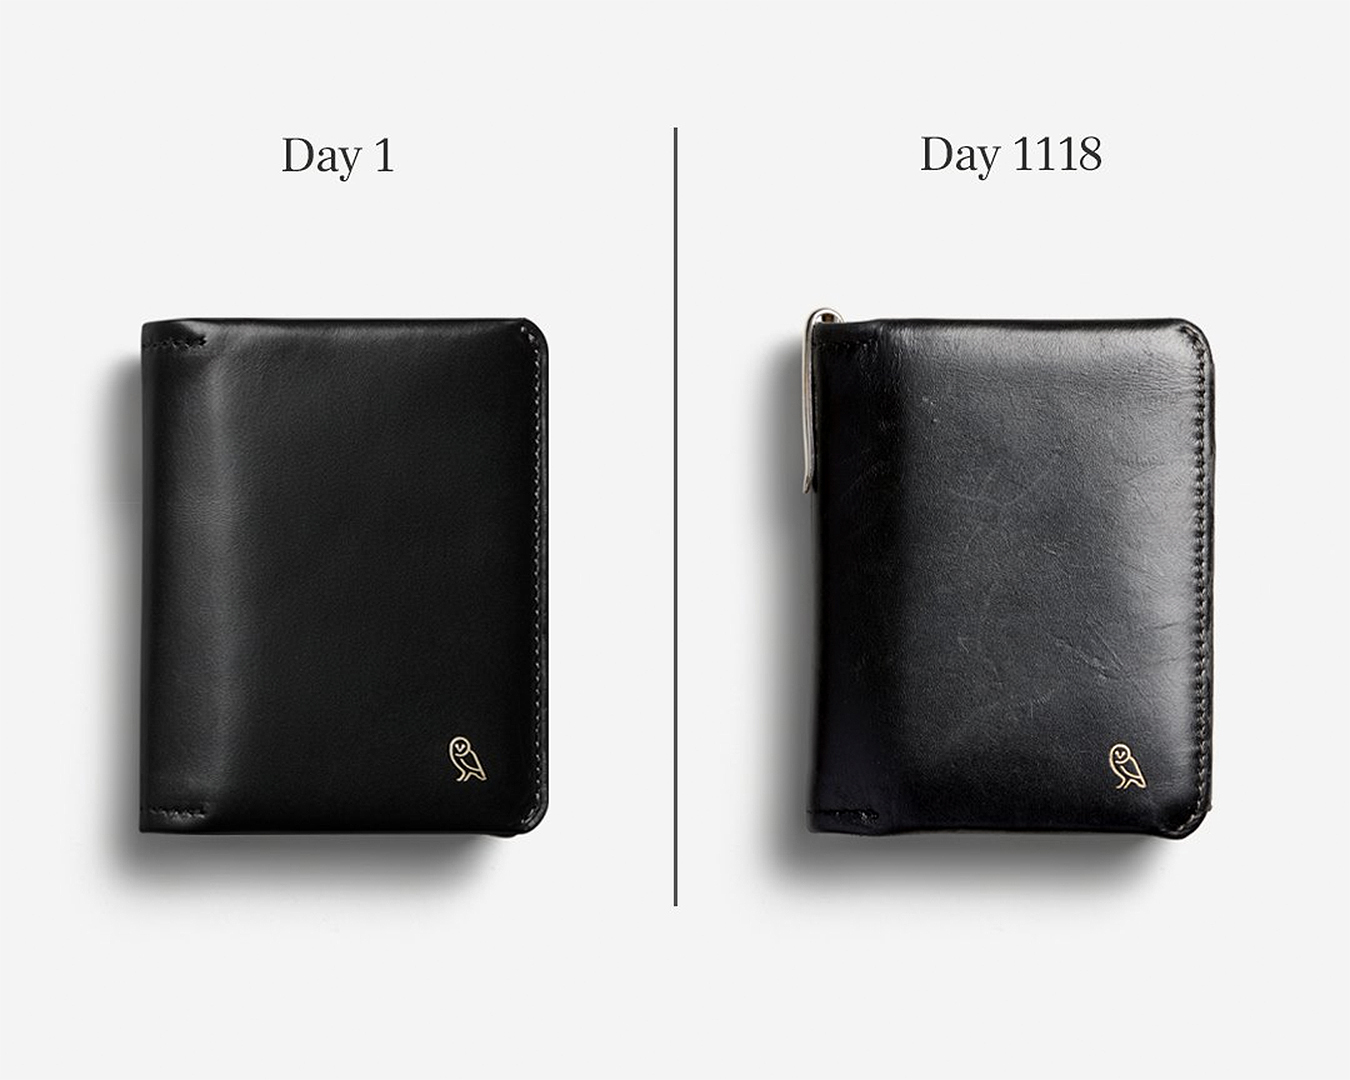 A wallet from Bellroy showing the difference between day 1 and day 1118 (not much), available from the iconic